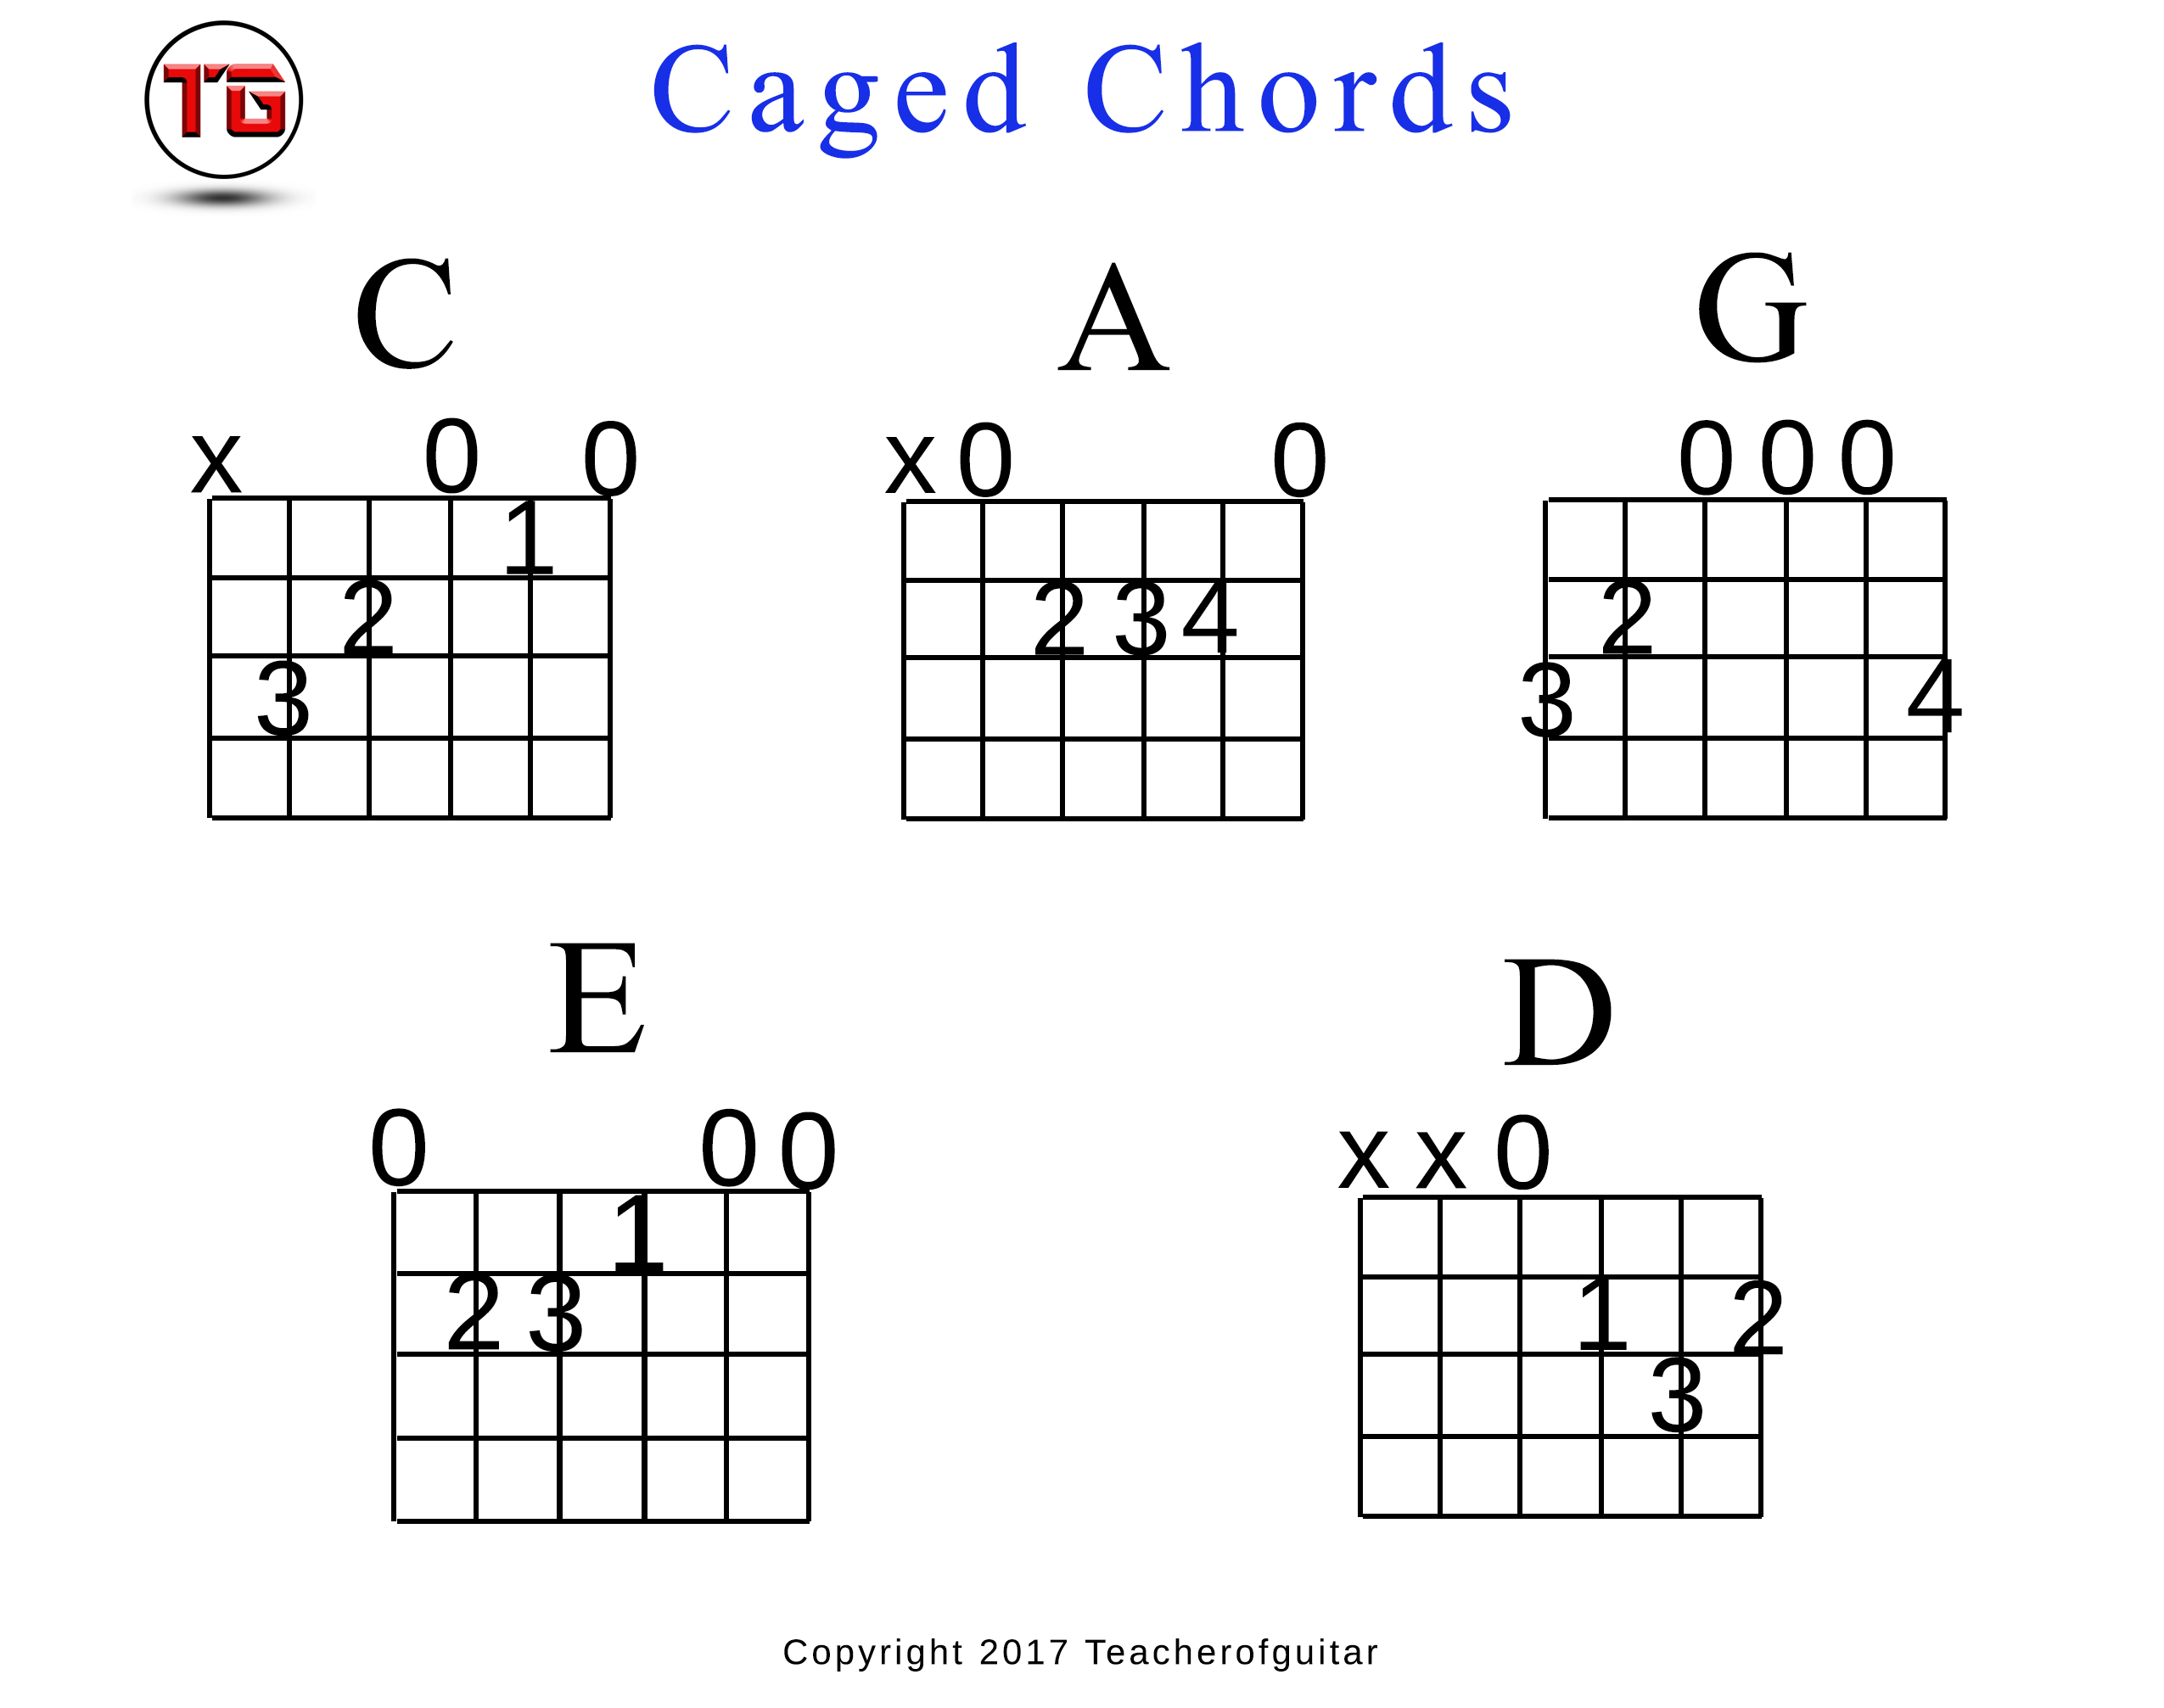 Caged Chords Chart